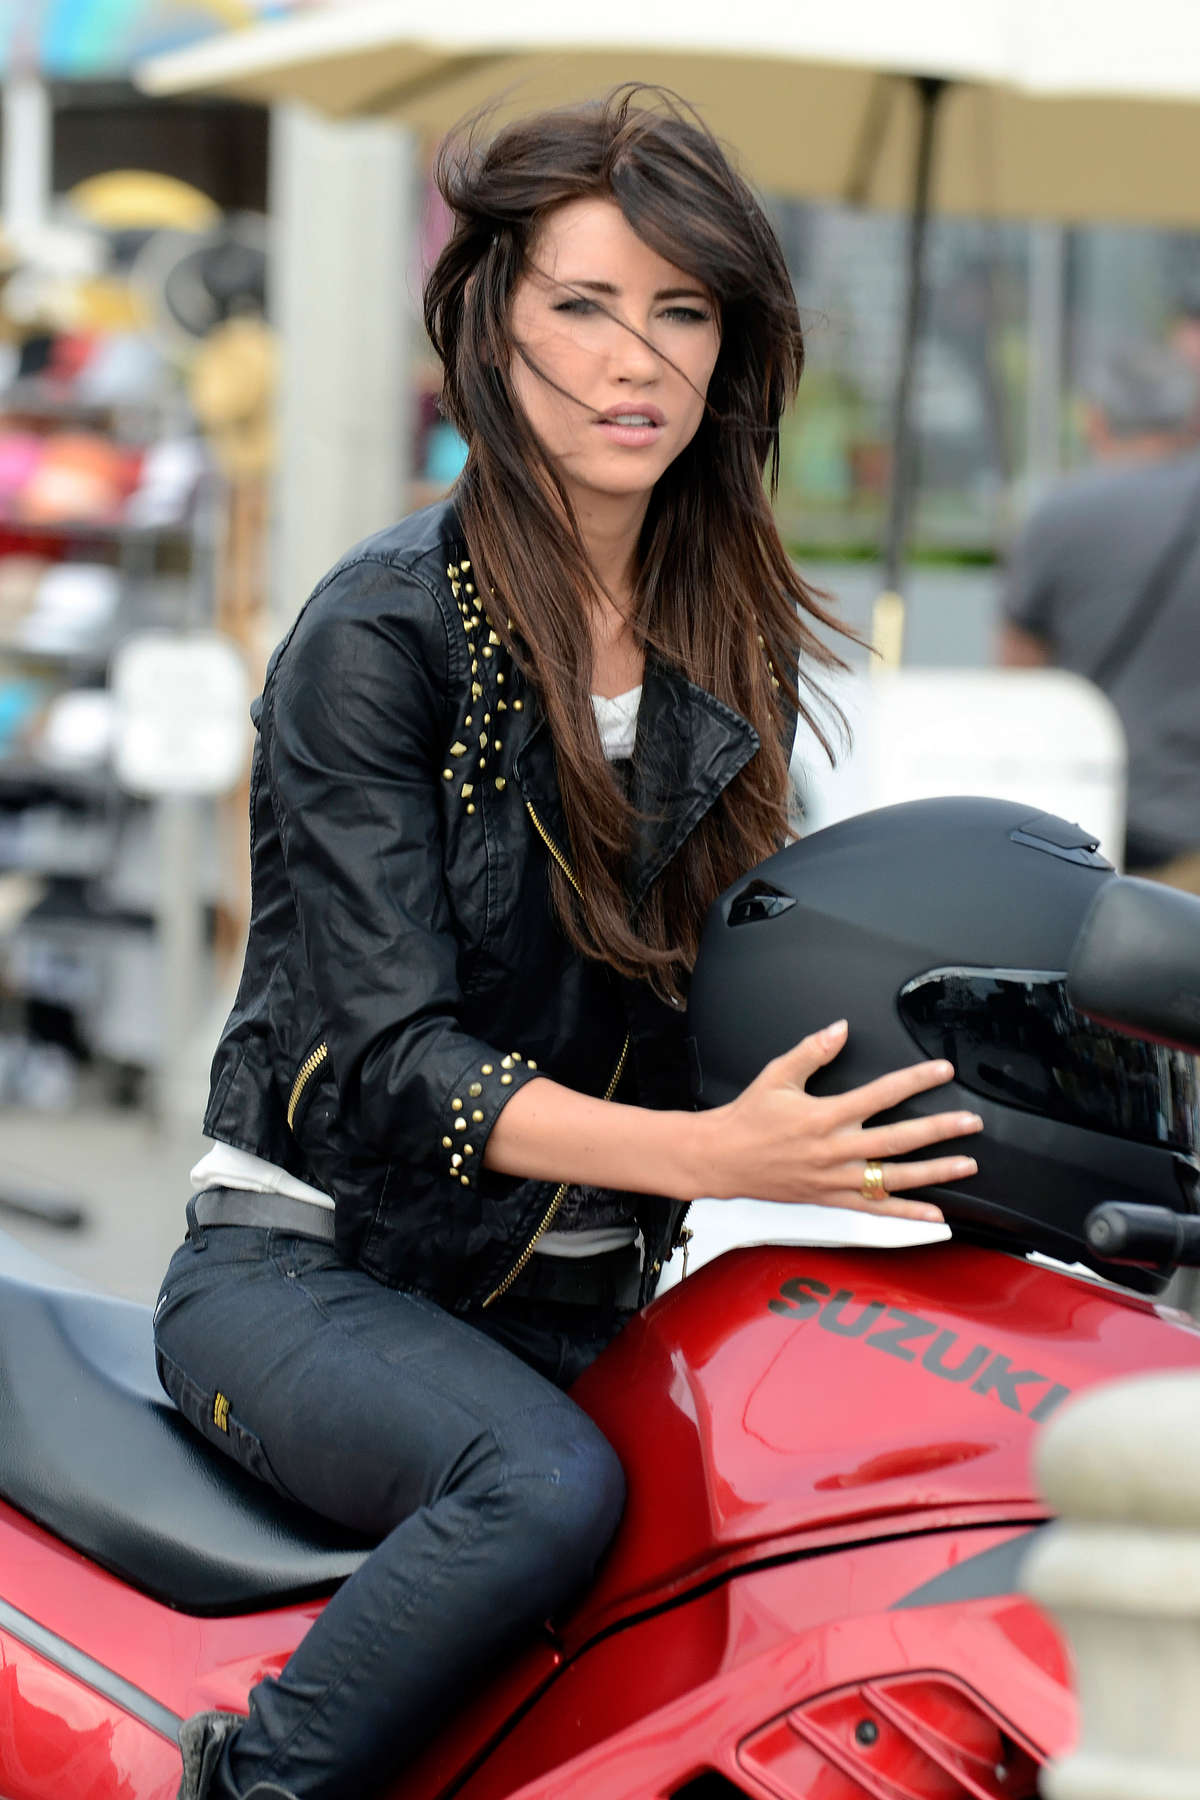 Jacqueline MacInnes Wood On the set of The Bold And The Beautiful